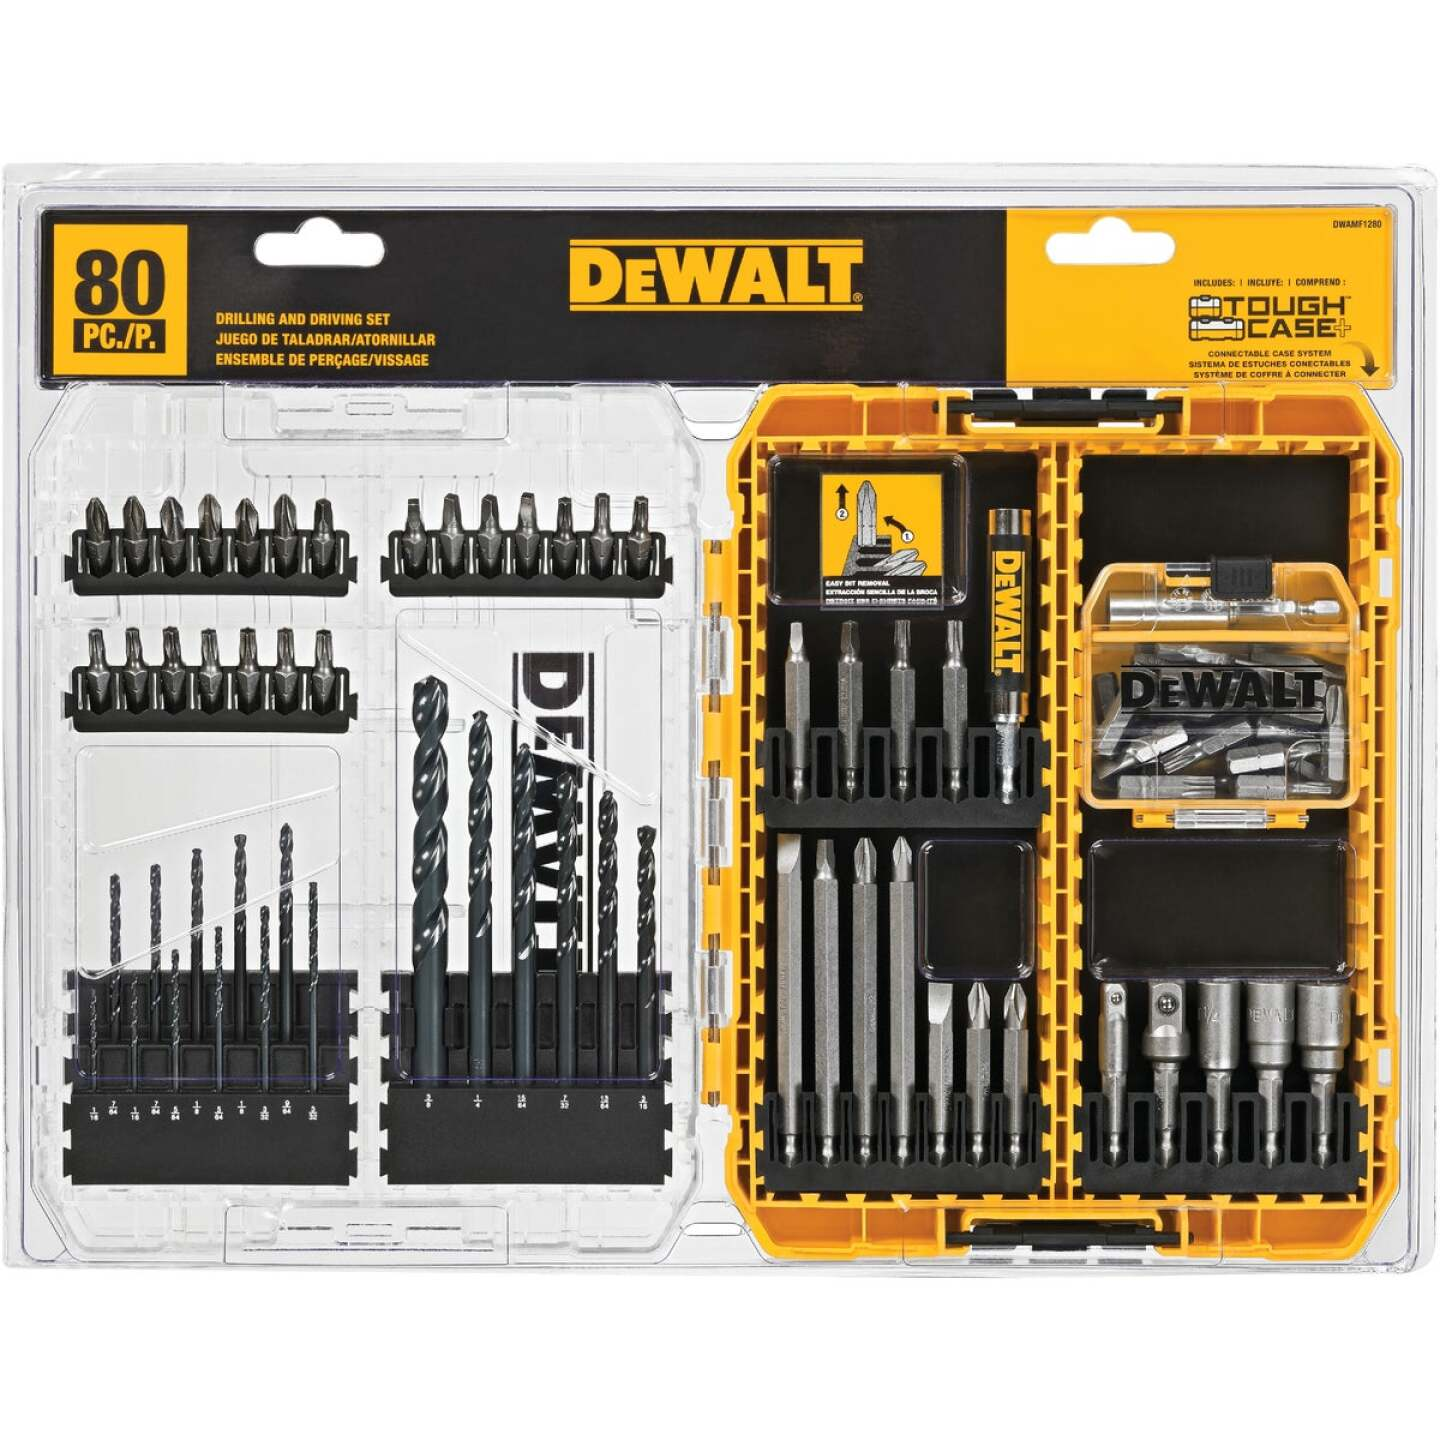 DeWalt 80-Piece Drill and Drive Set Image 2